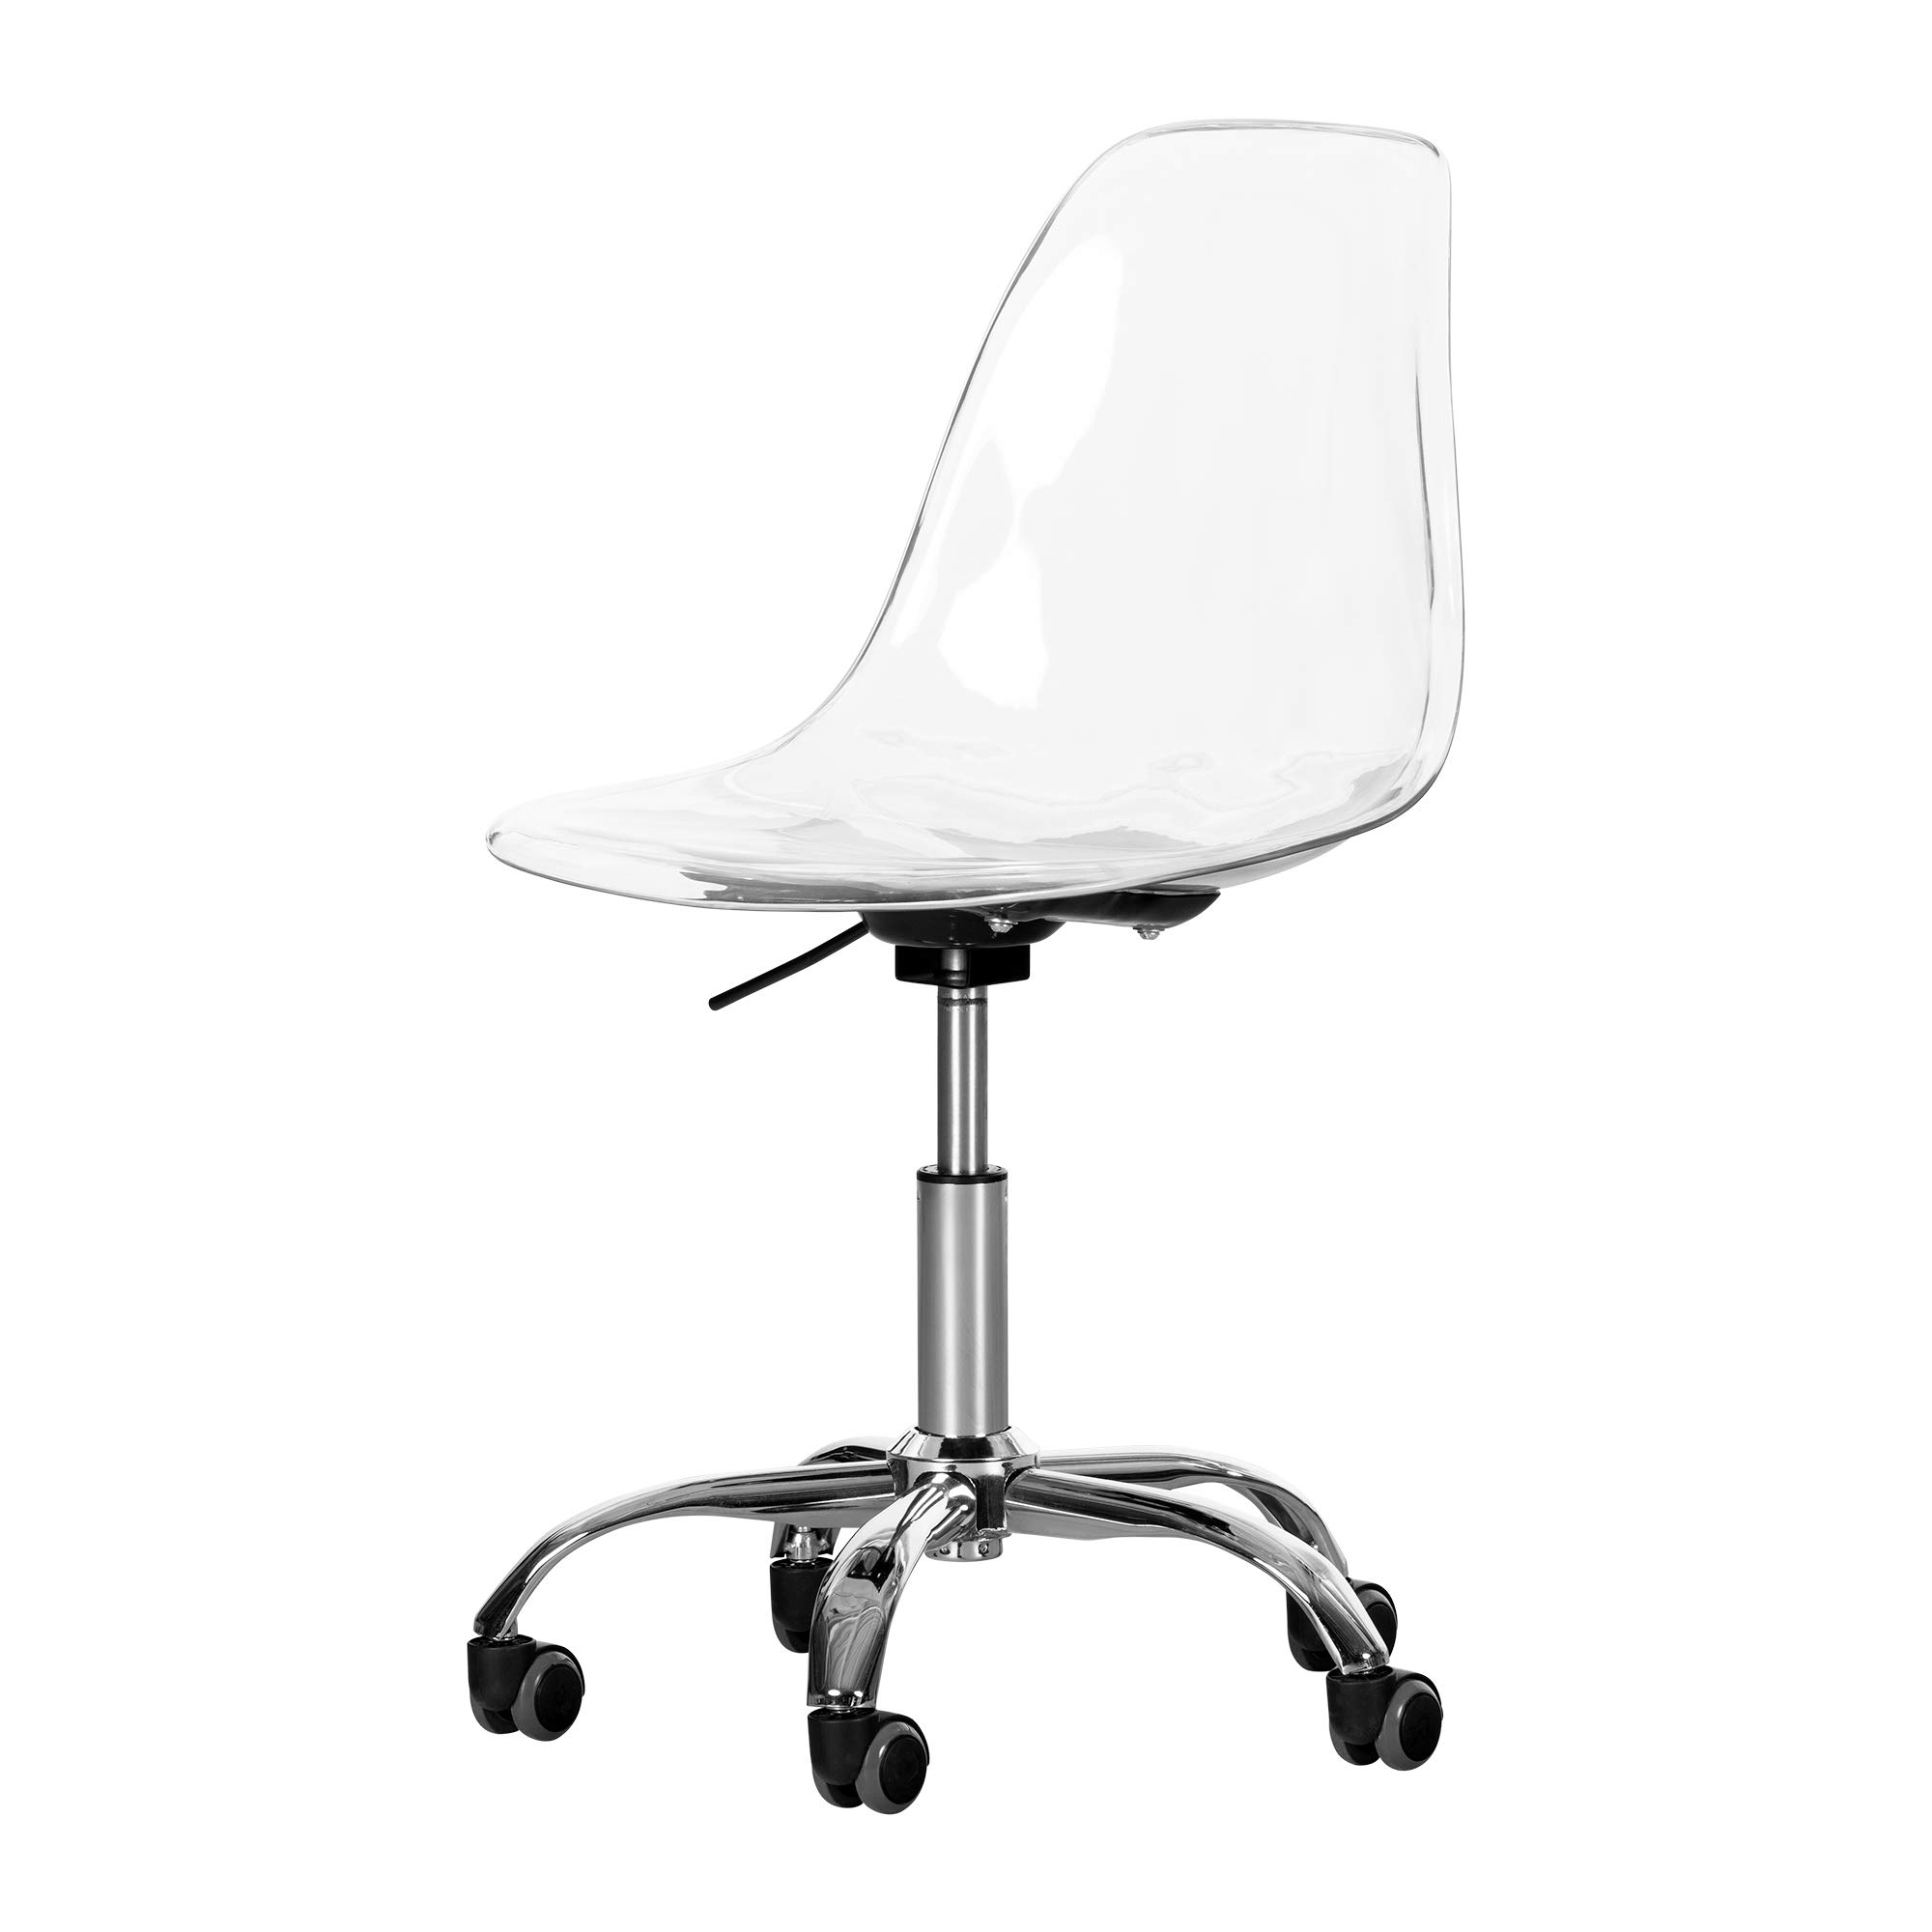 South Shore 12519 Axess Acrylic Office Chair with Wheels-Clear